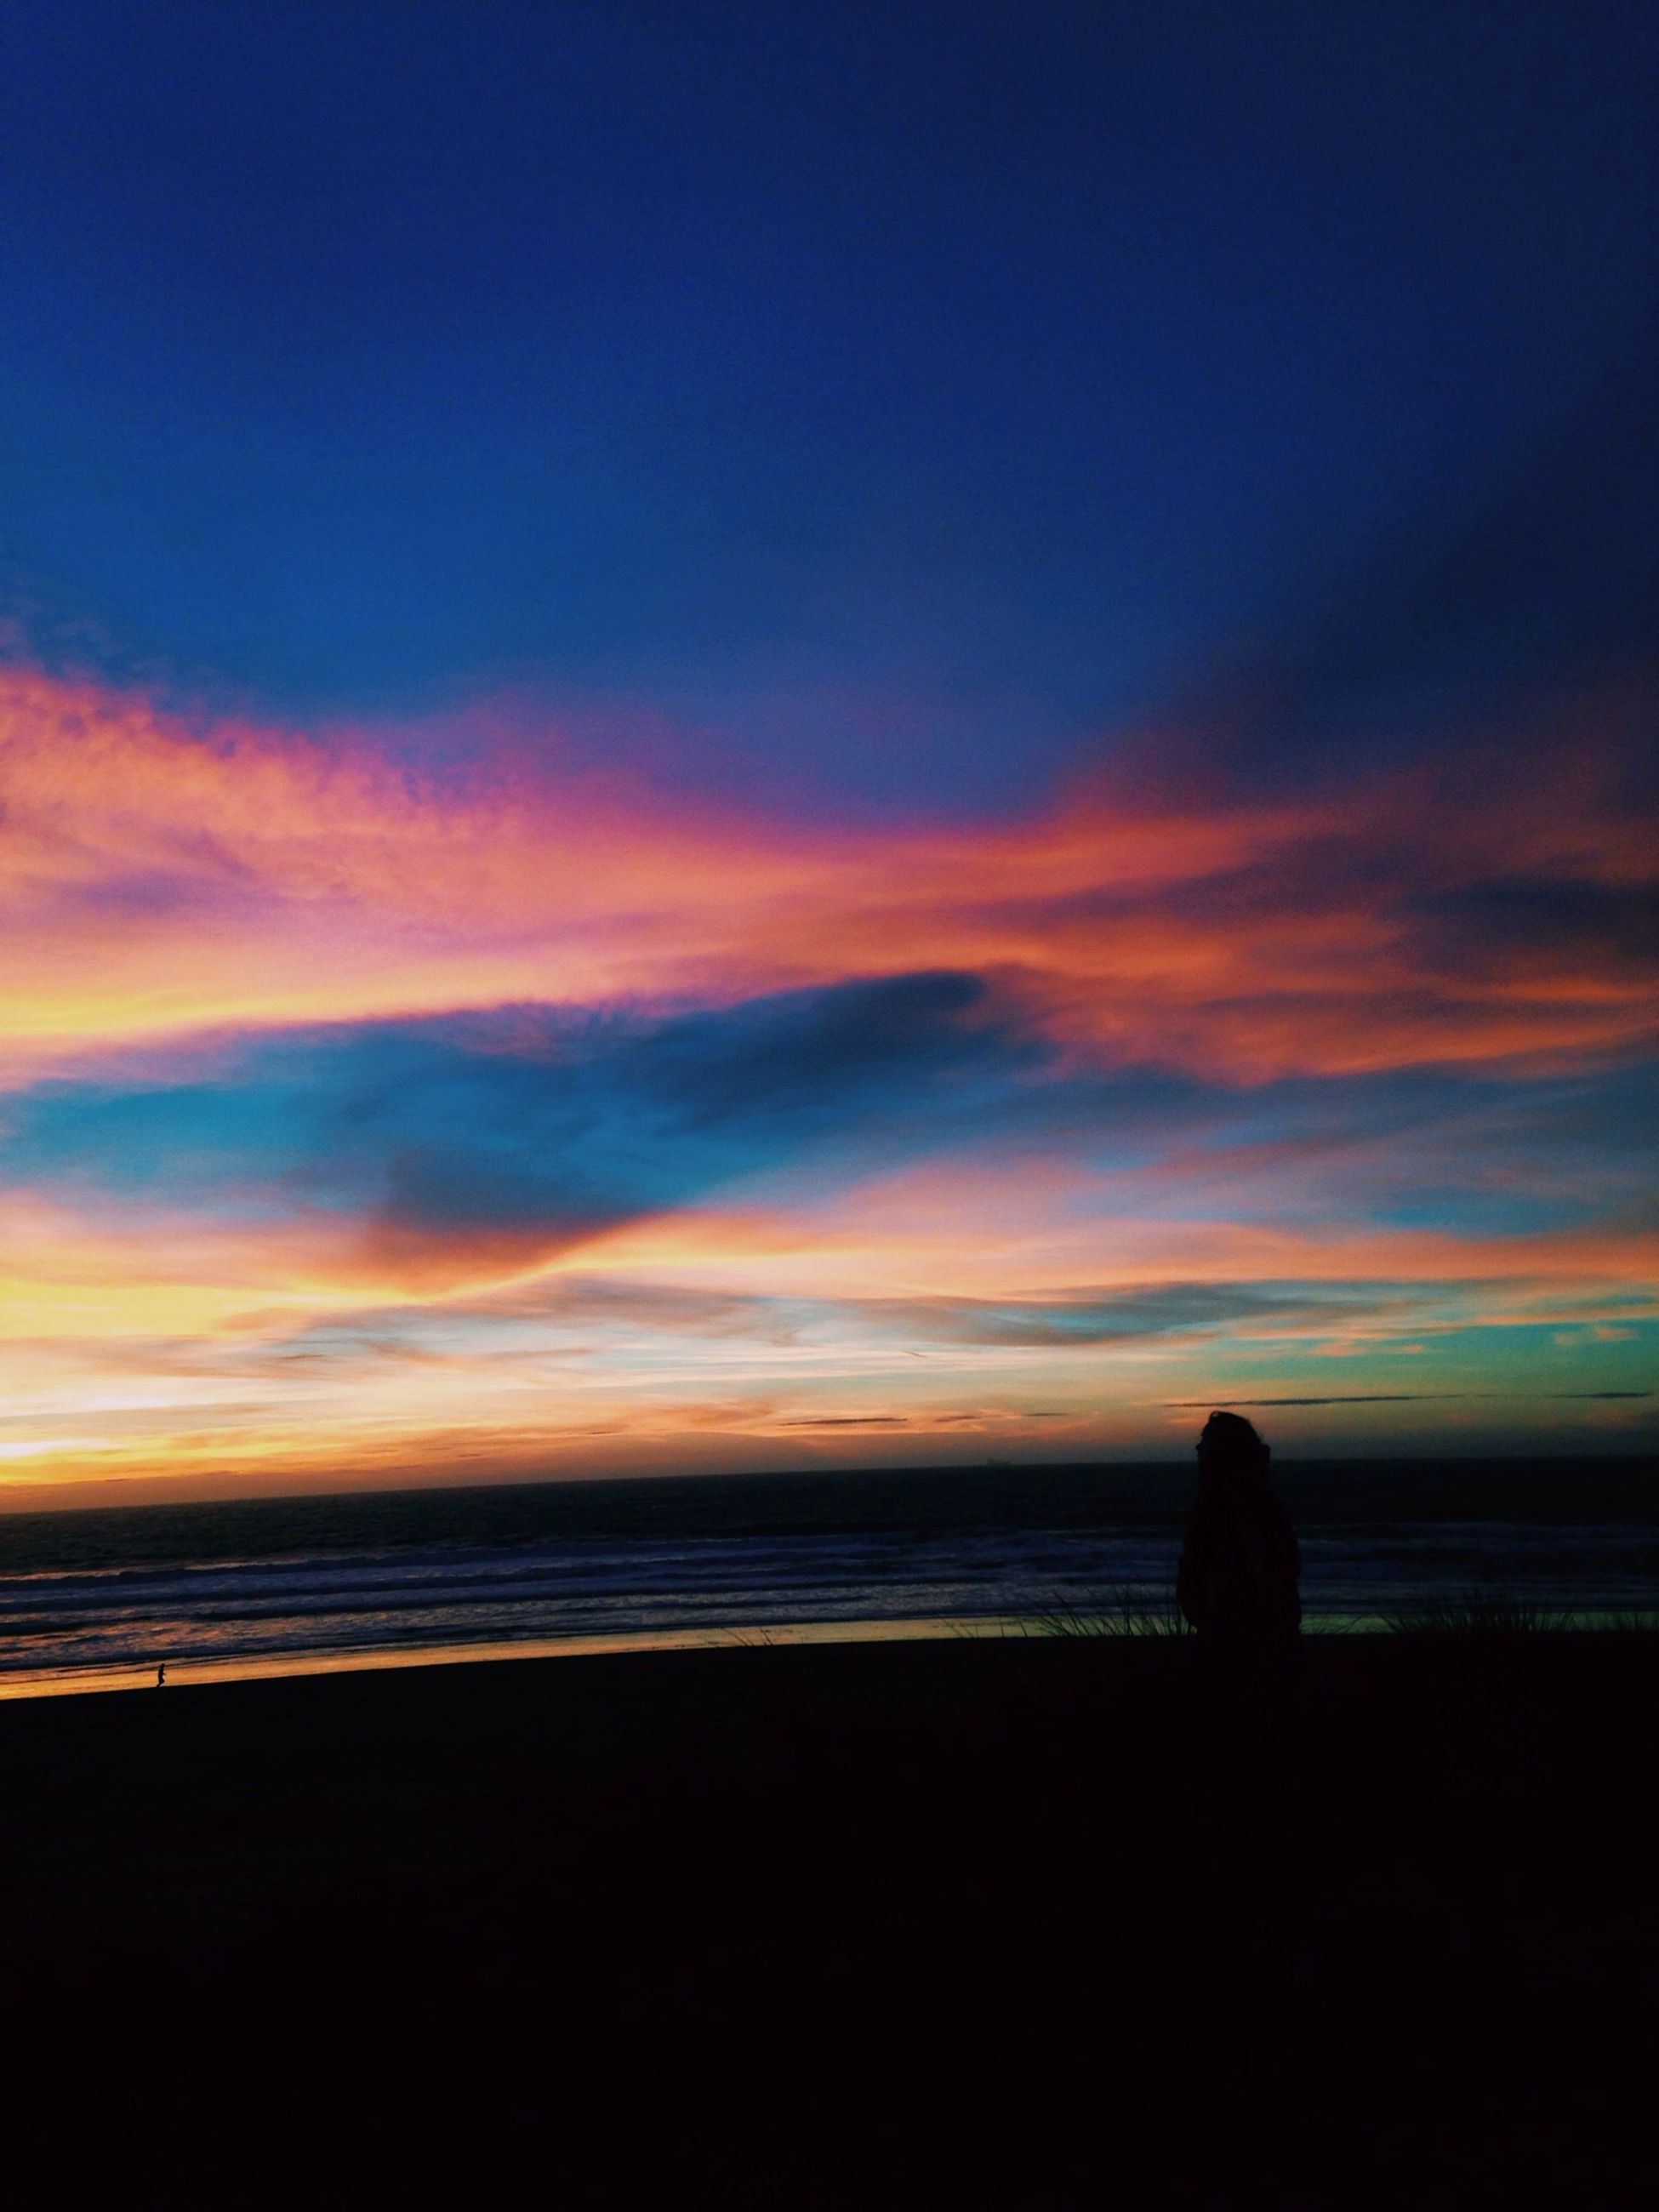 sunset, sea, silhouette, horizon over water, water, sky, scenics, beauty in nature, tranquil scene, tranquility, beach, orange color, shore, idyllic, nature, cloud - sky, standing, dusk, cloud